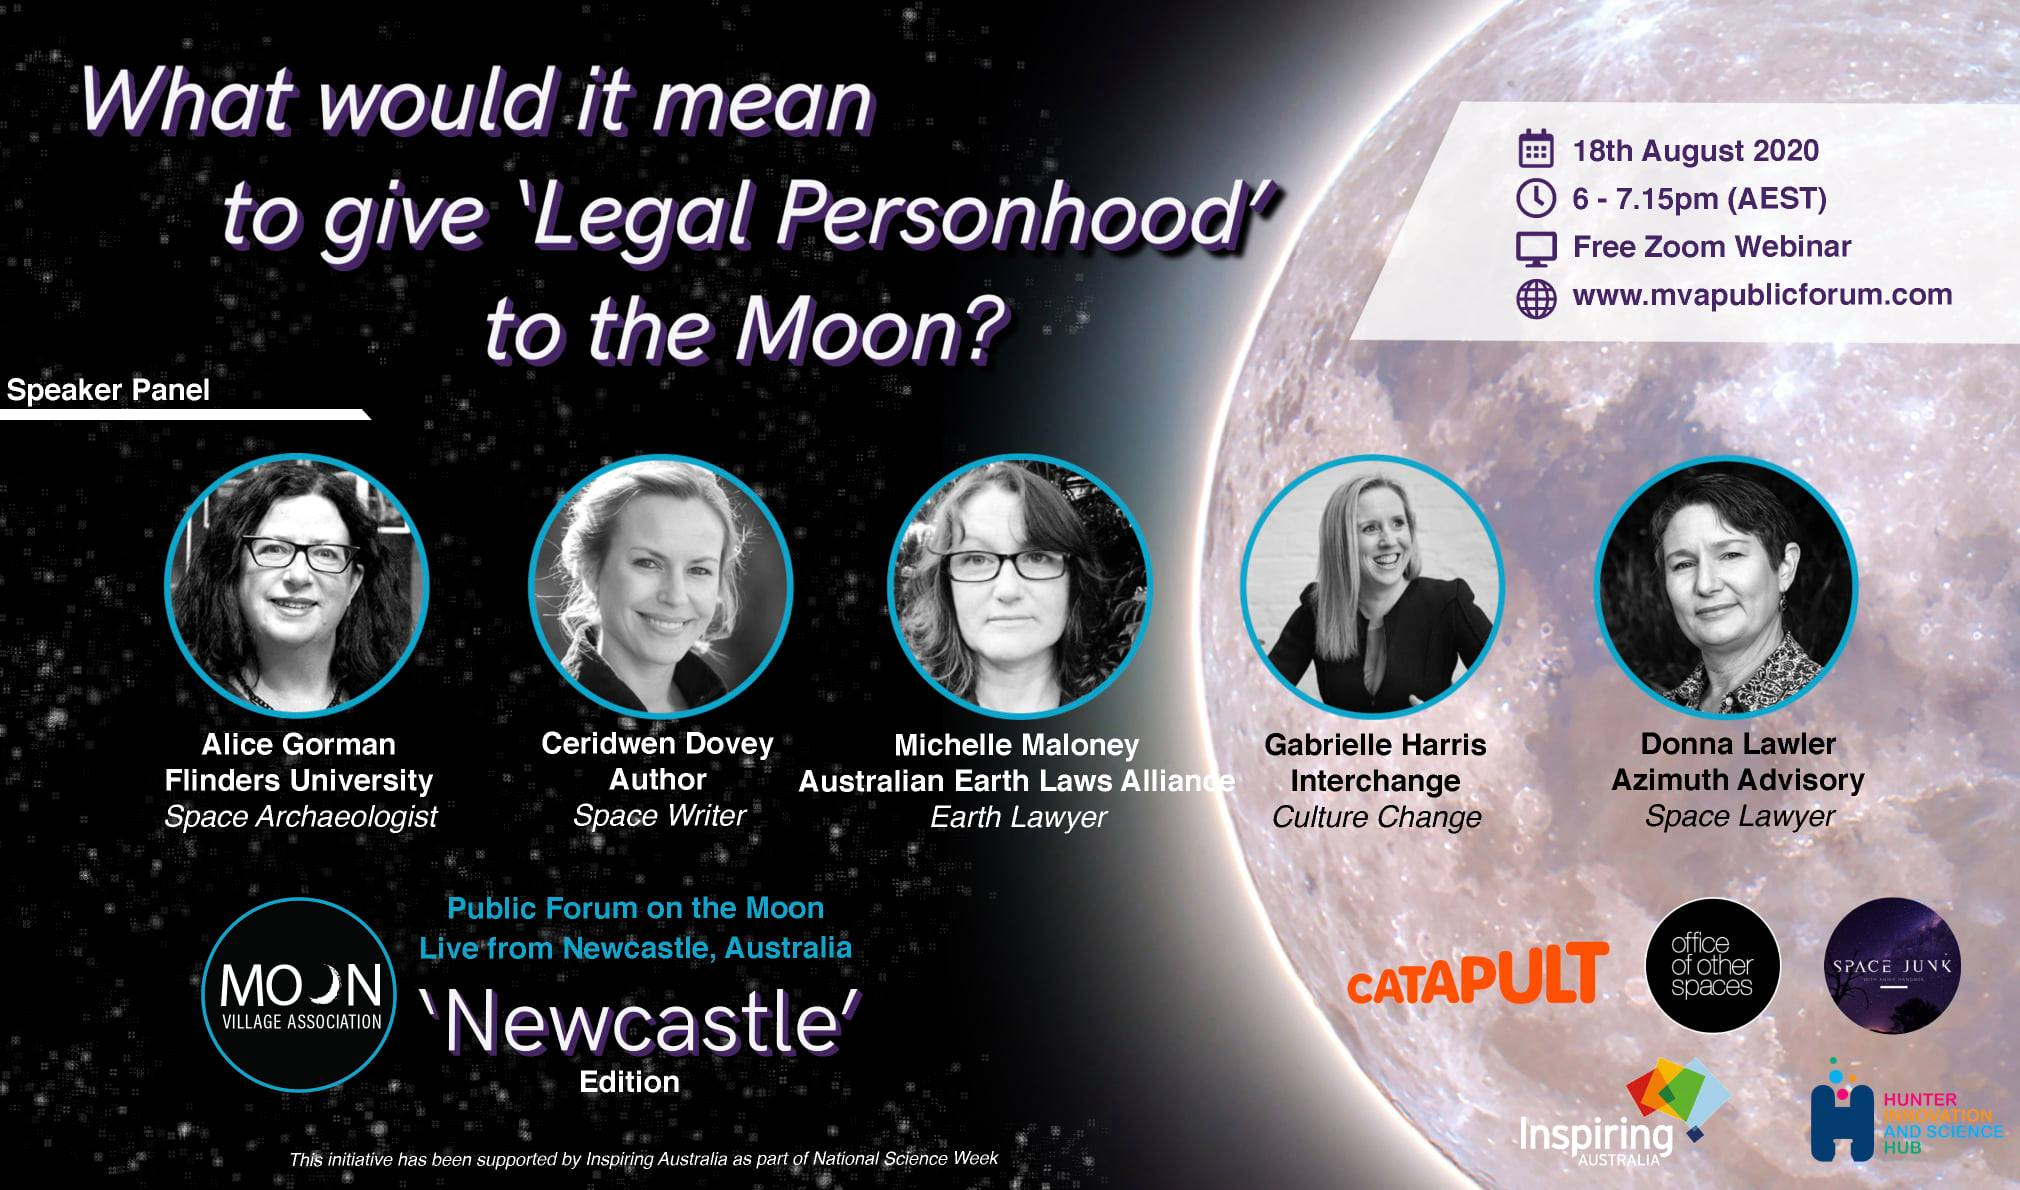 Webinar: What would it mean to give 'Legal Personhood' to the Moon?